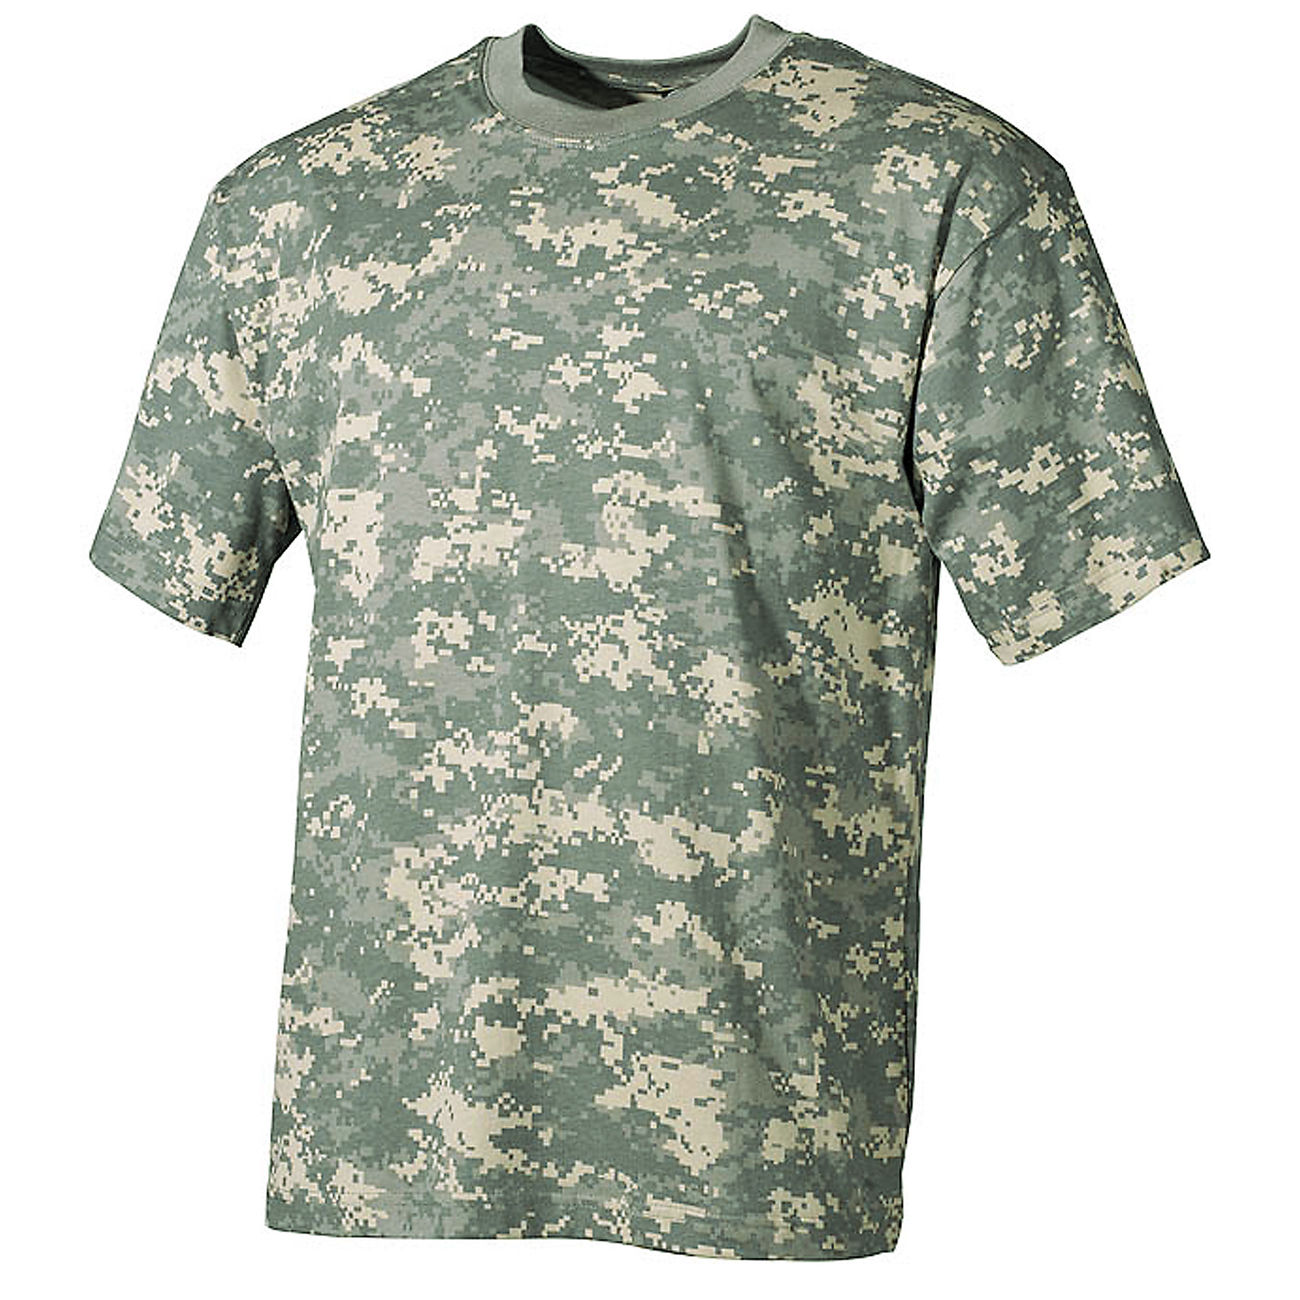 premium selection 837bd 66568 MFH T-Shirt AT-digital